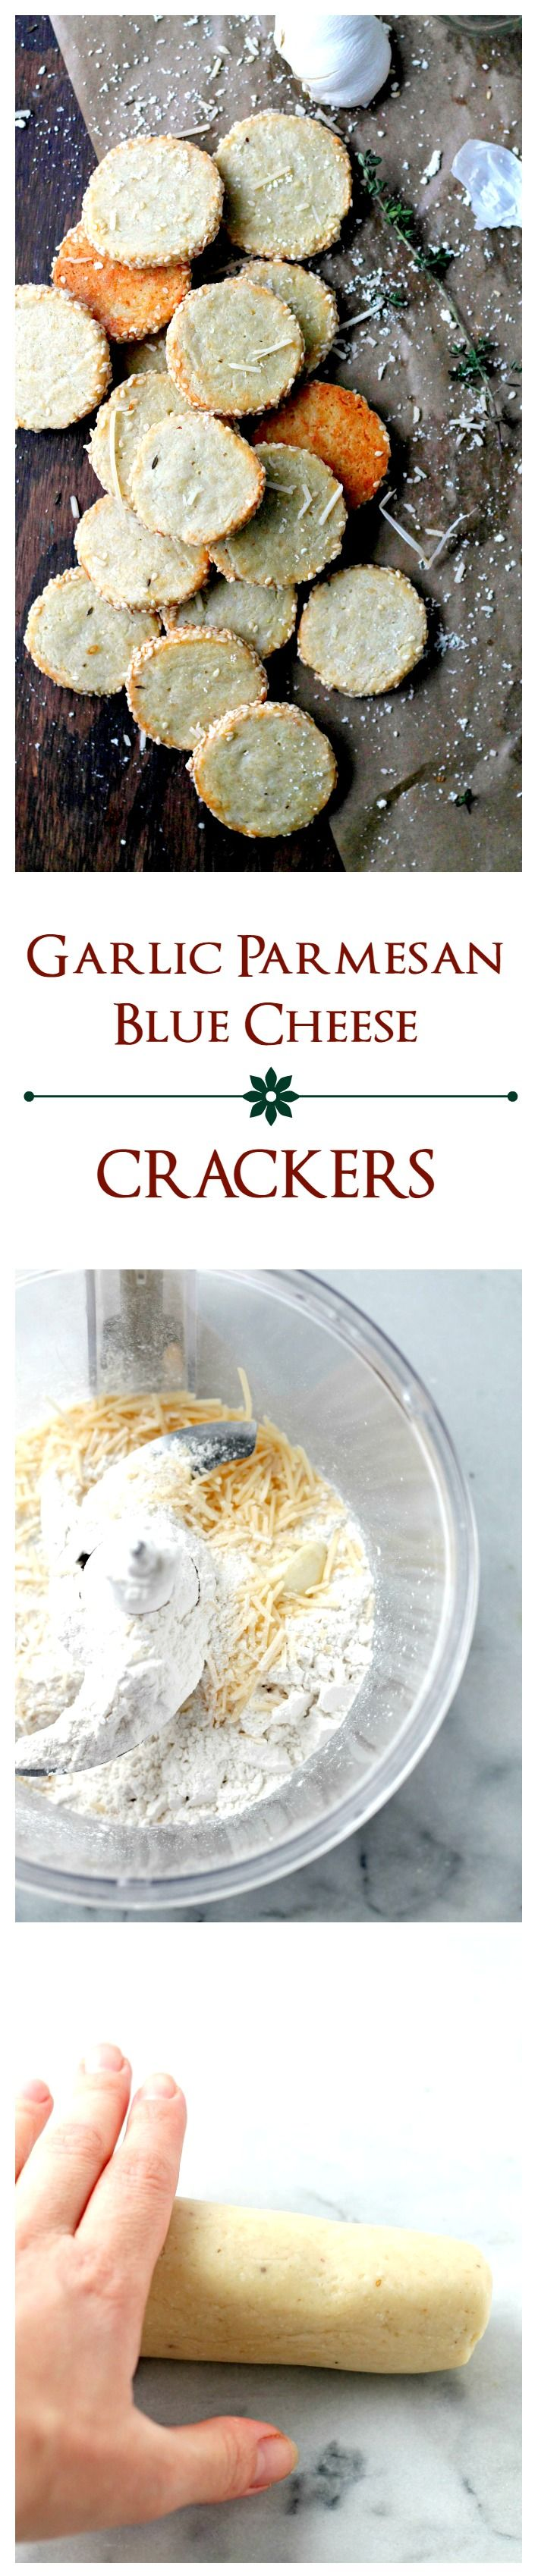 Garlic Parmesan Blue Cheese Crackers – Irresistible homemade cheese crackers rolled in crunchy sesame seeds. Perfect for HOLIDAY GIFTING!